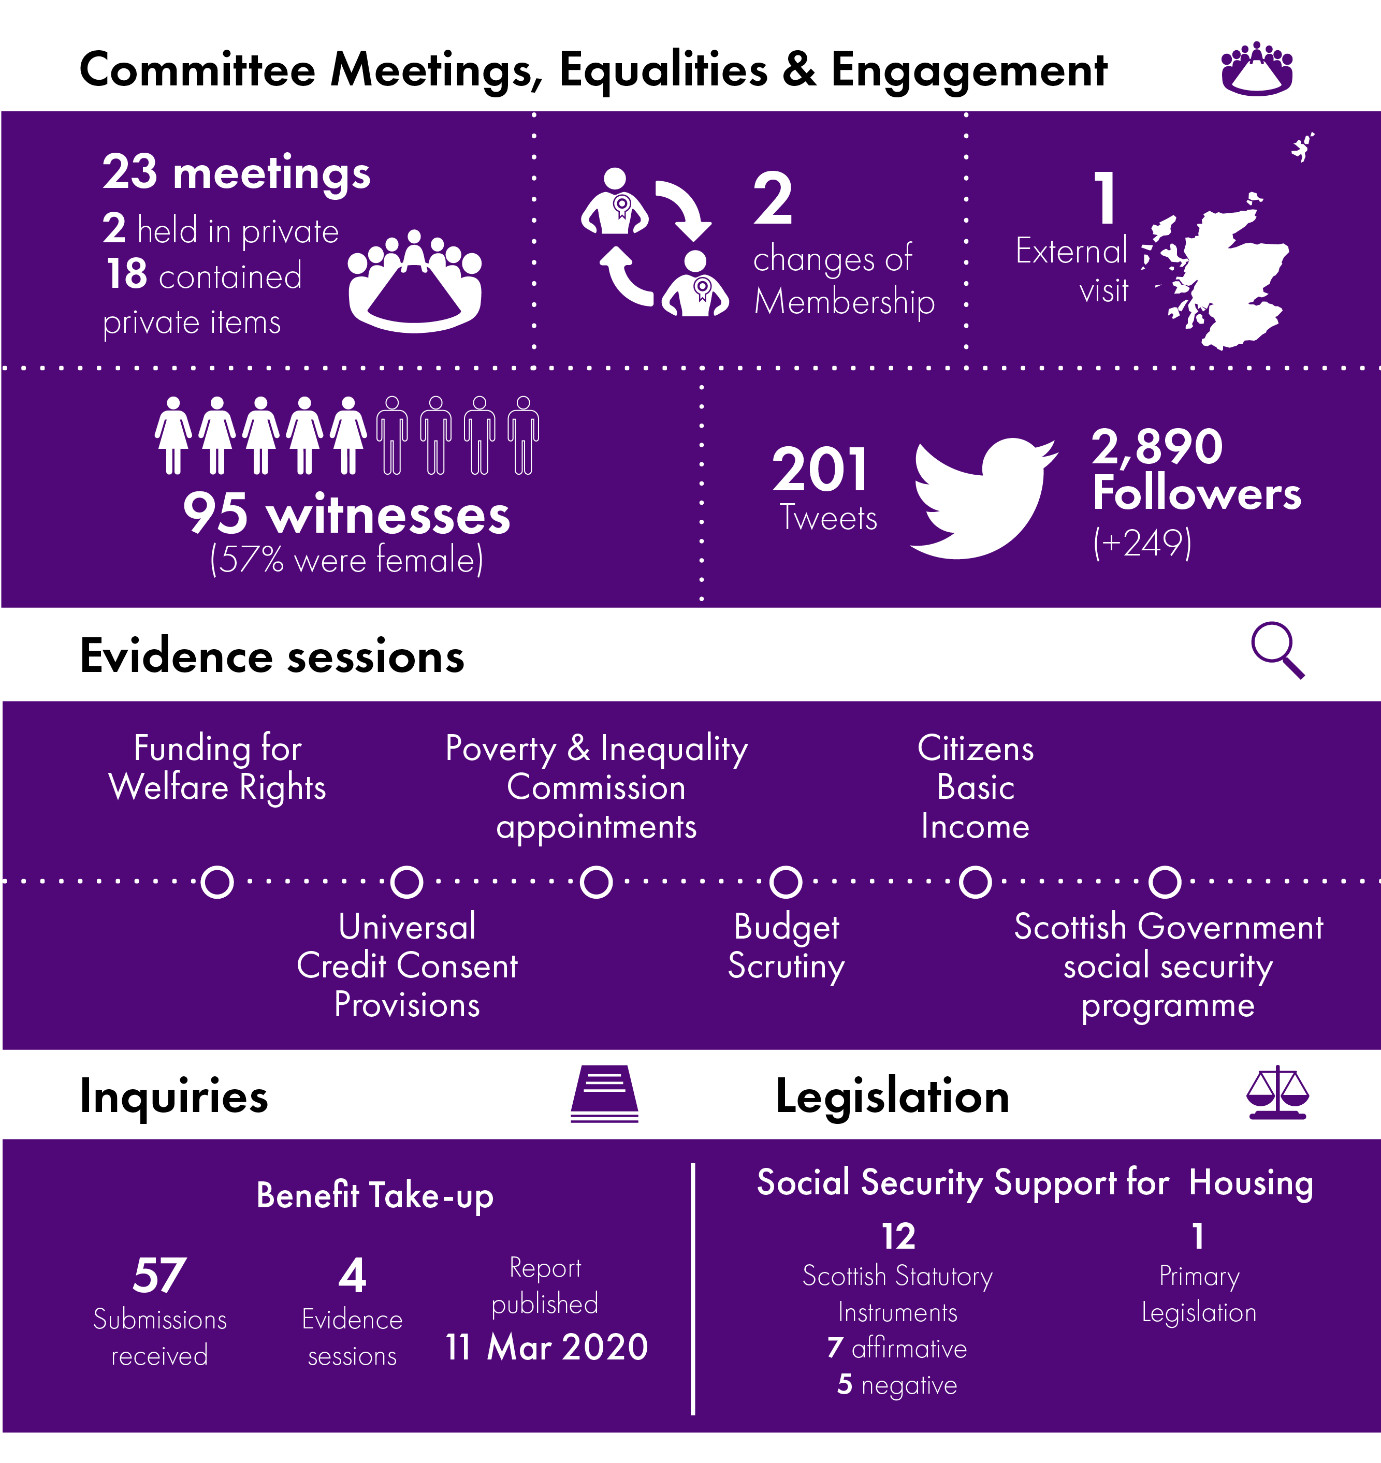 Infographic summarising the work of the Social Security Committee showing the number of meetings, evidence sessions held, inquiries undertaken and the legislation considered. Further detail is provided in the body of the report.